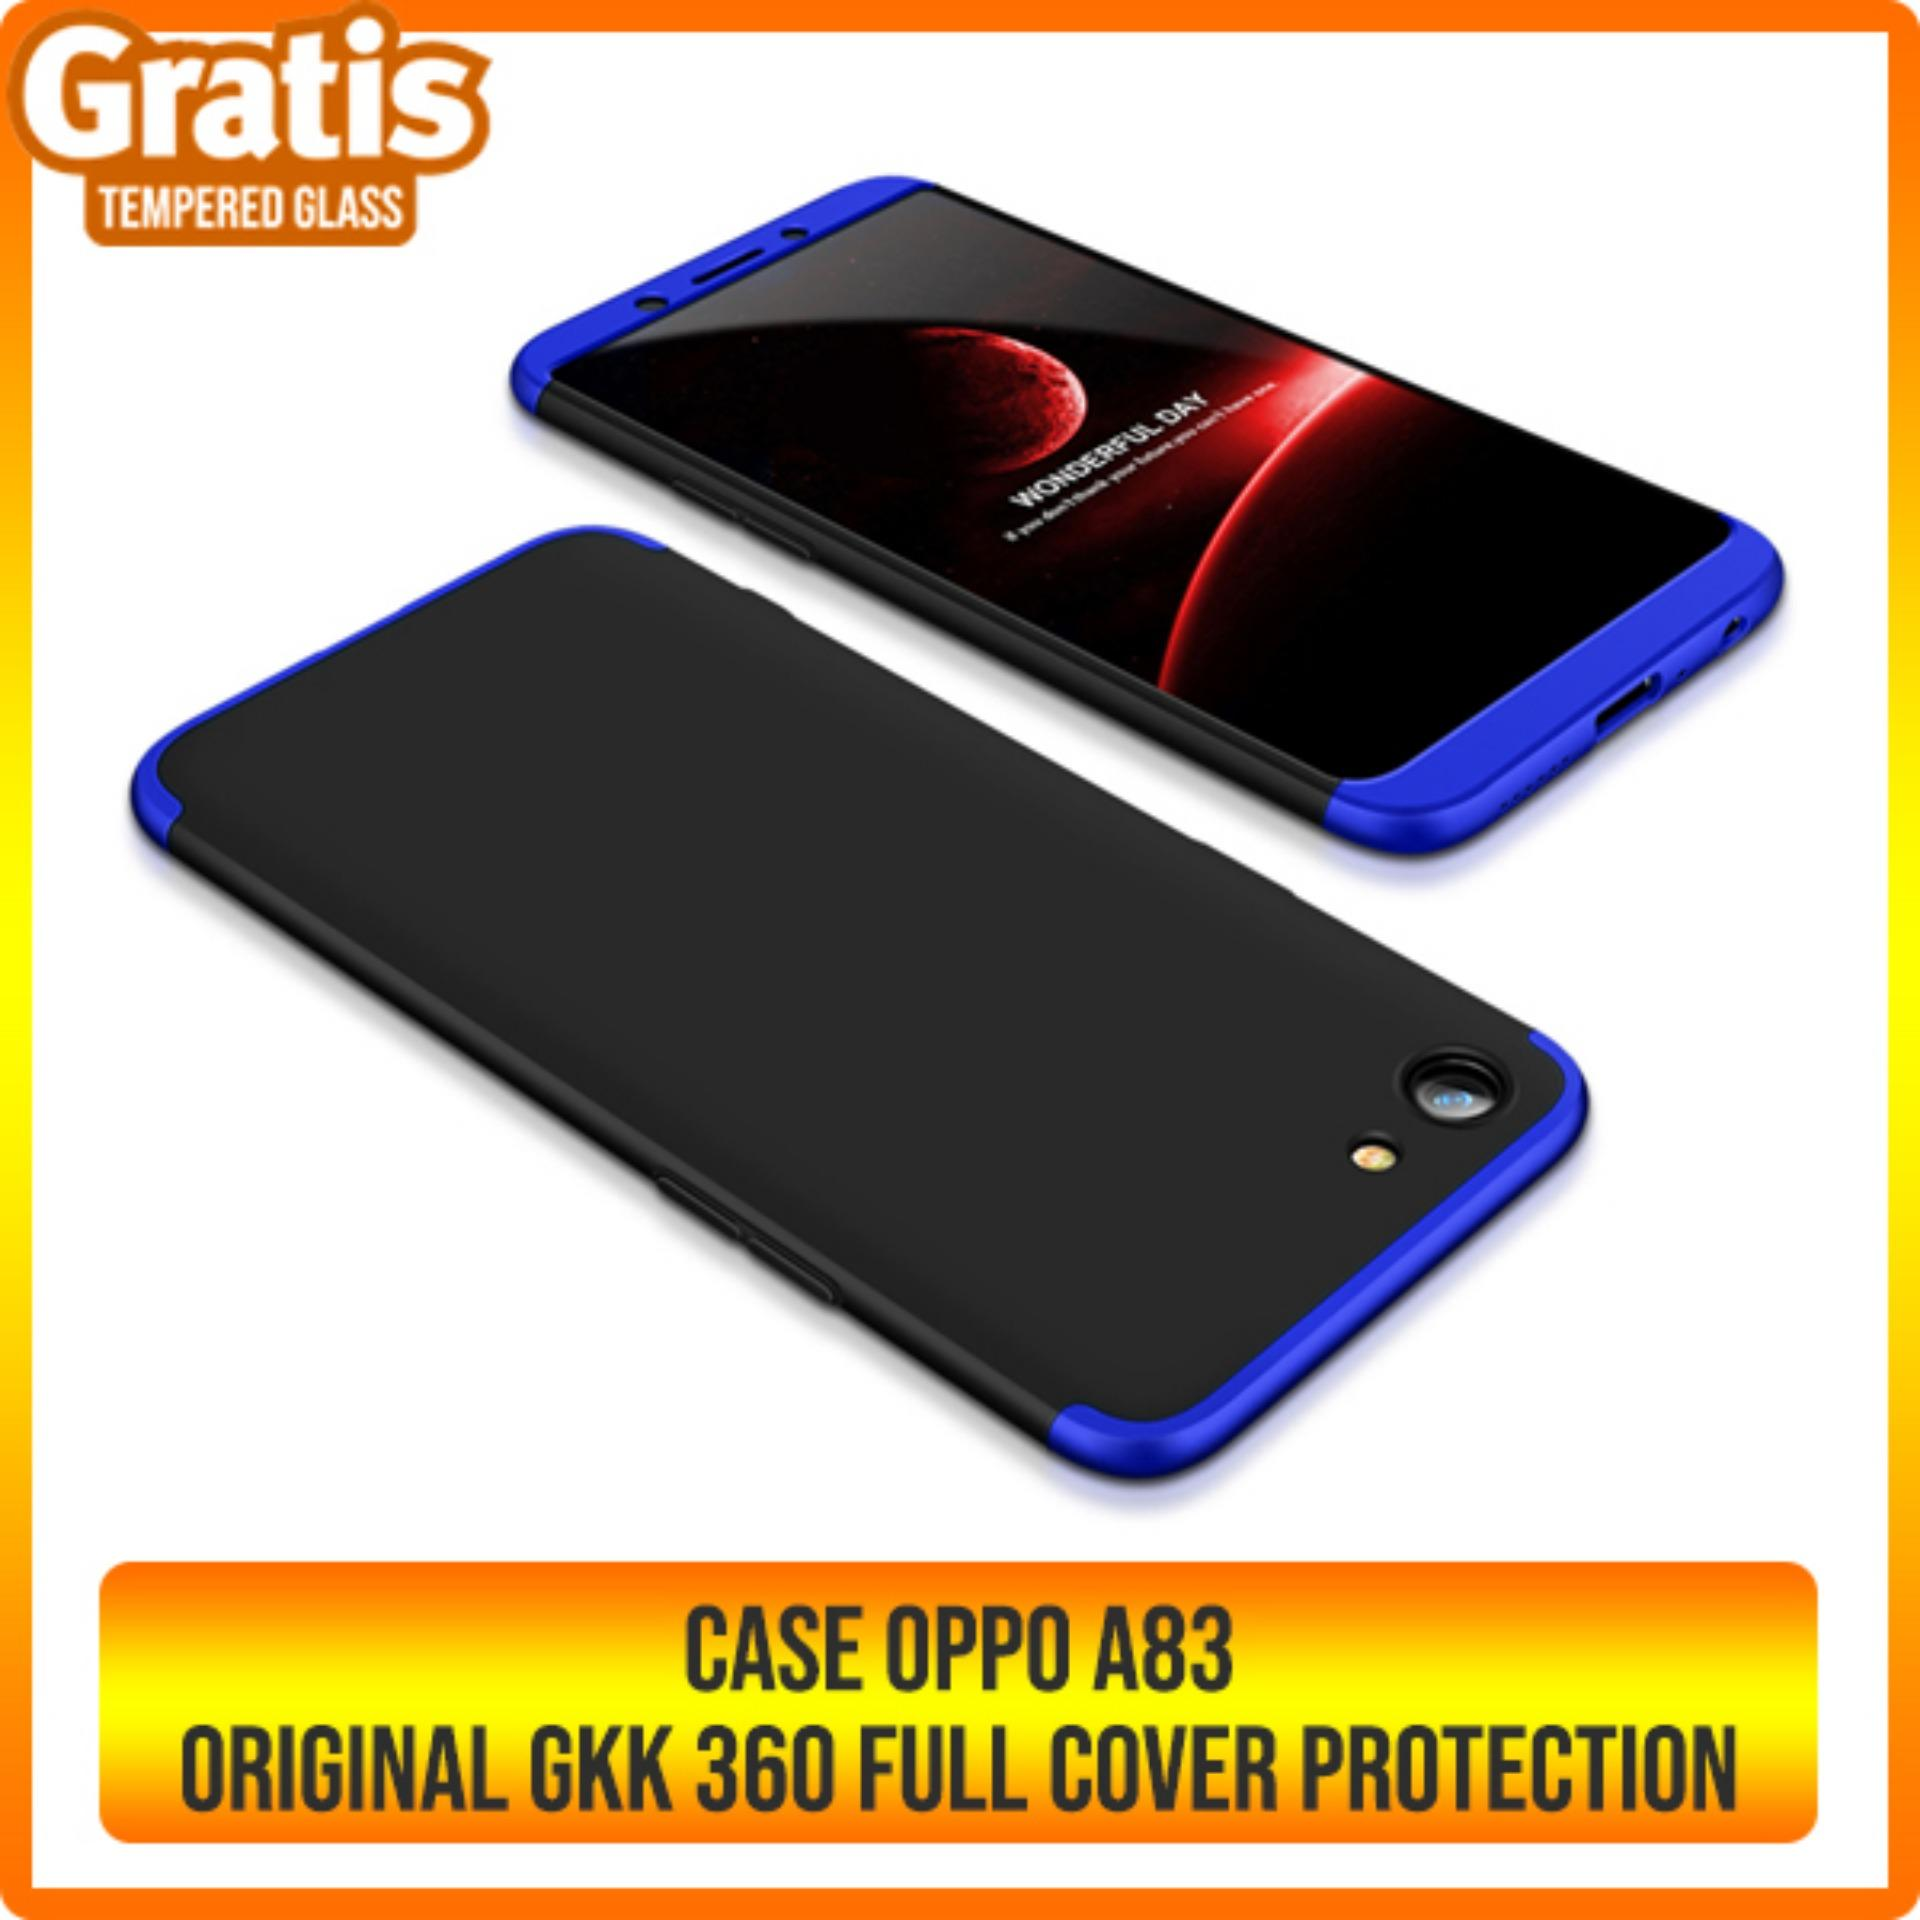 Rp 59.000. CASE OPPO A83 GKK ORIGINAL FULL COVER 360 PROTECTIONIDR59000